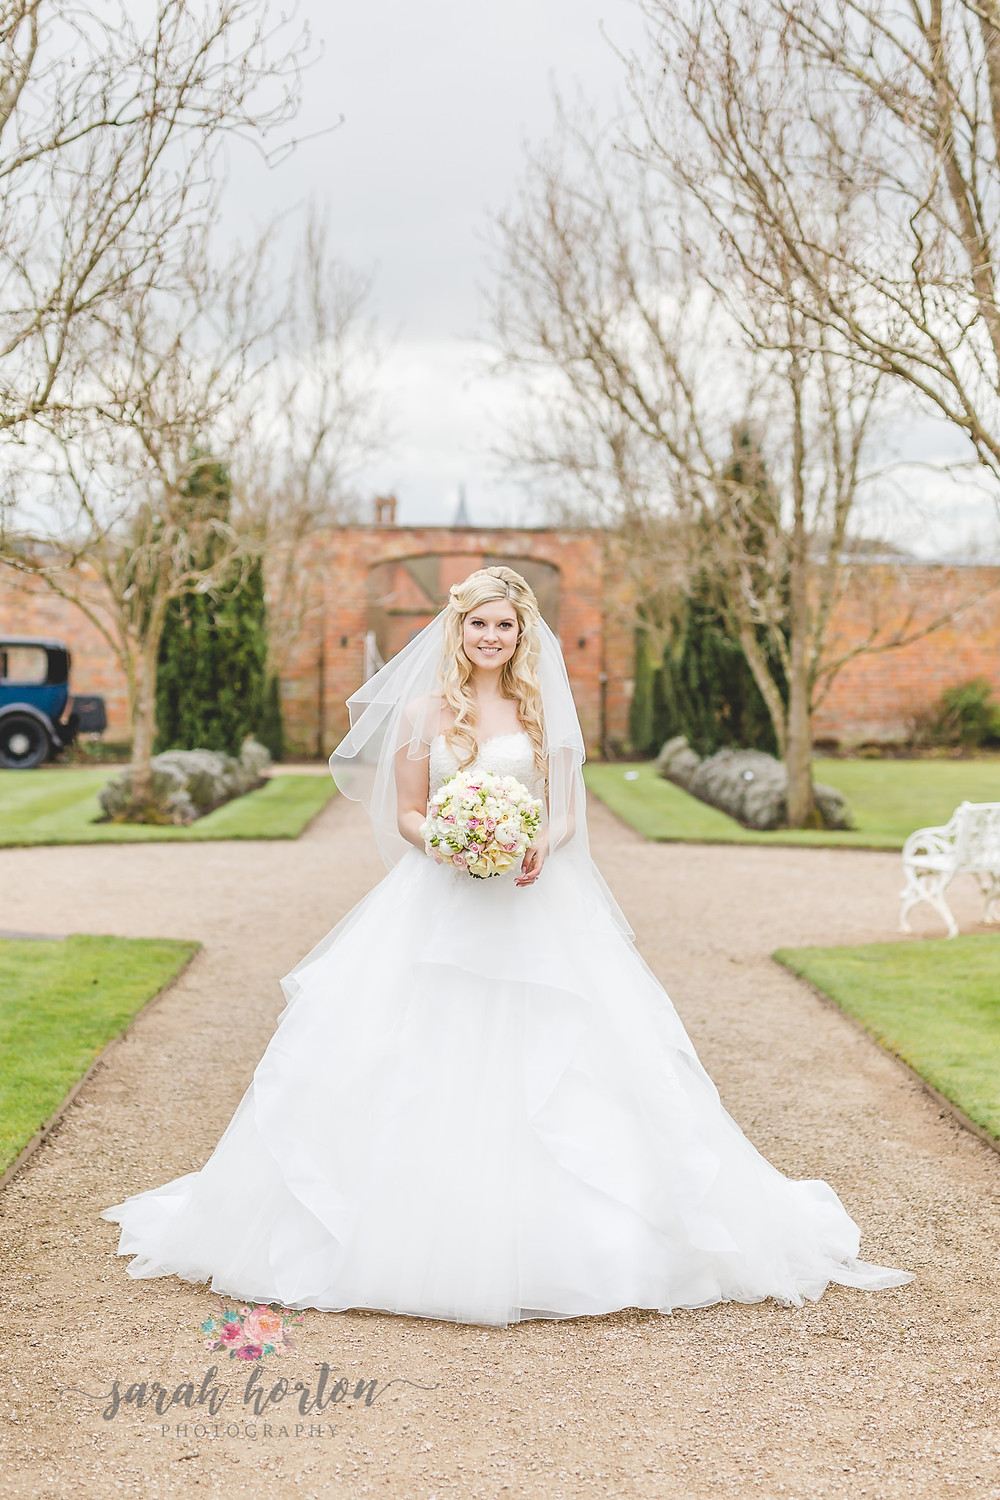 Combermere Abbey Cheshire Wedding Photography Walled Gardens Chyaz